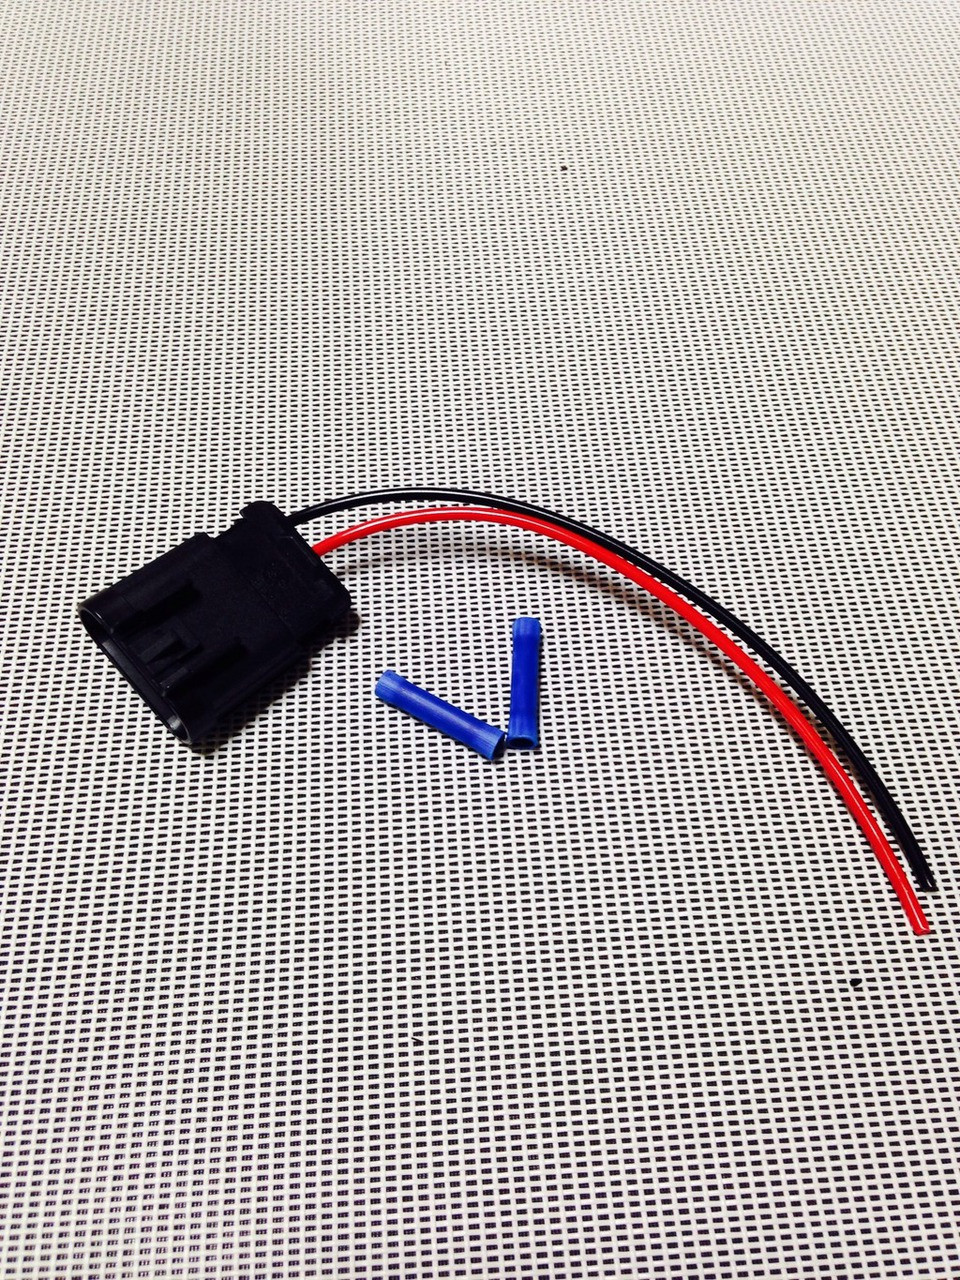 hight resolution of xm chassis led wiring harness plug kit price 25 00 image 1